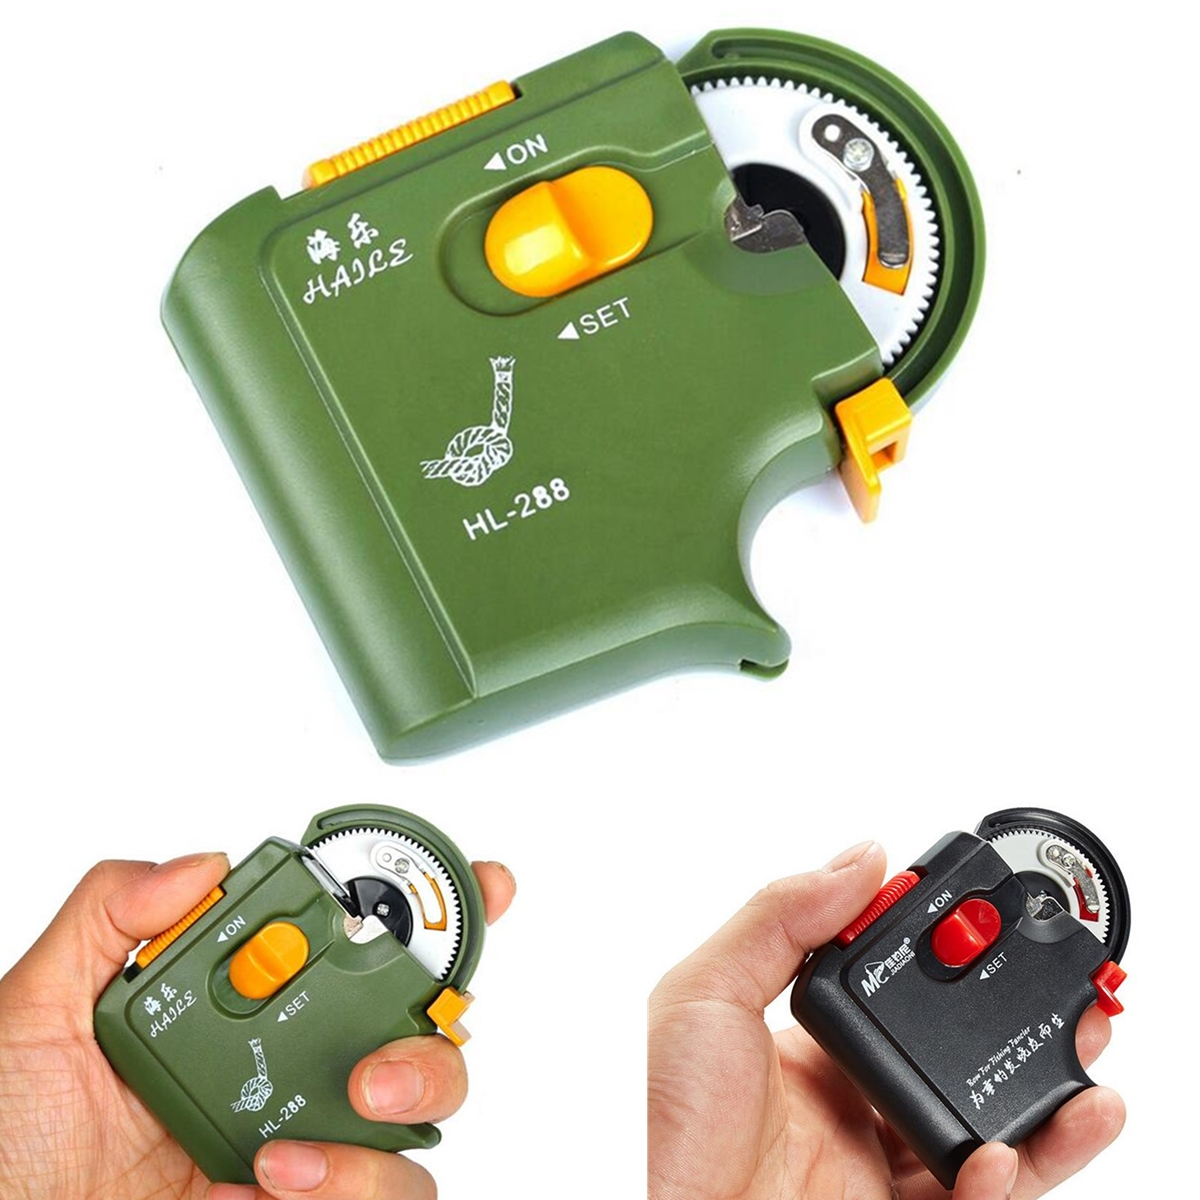 ABS Electric Fishing Hook Tier Automatic Tying Fishing Hook Device - Green